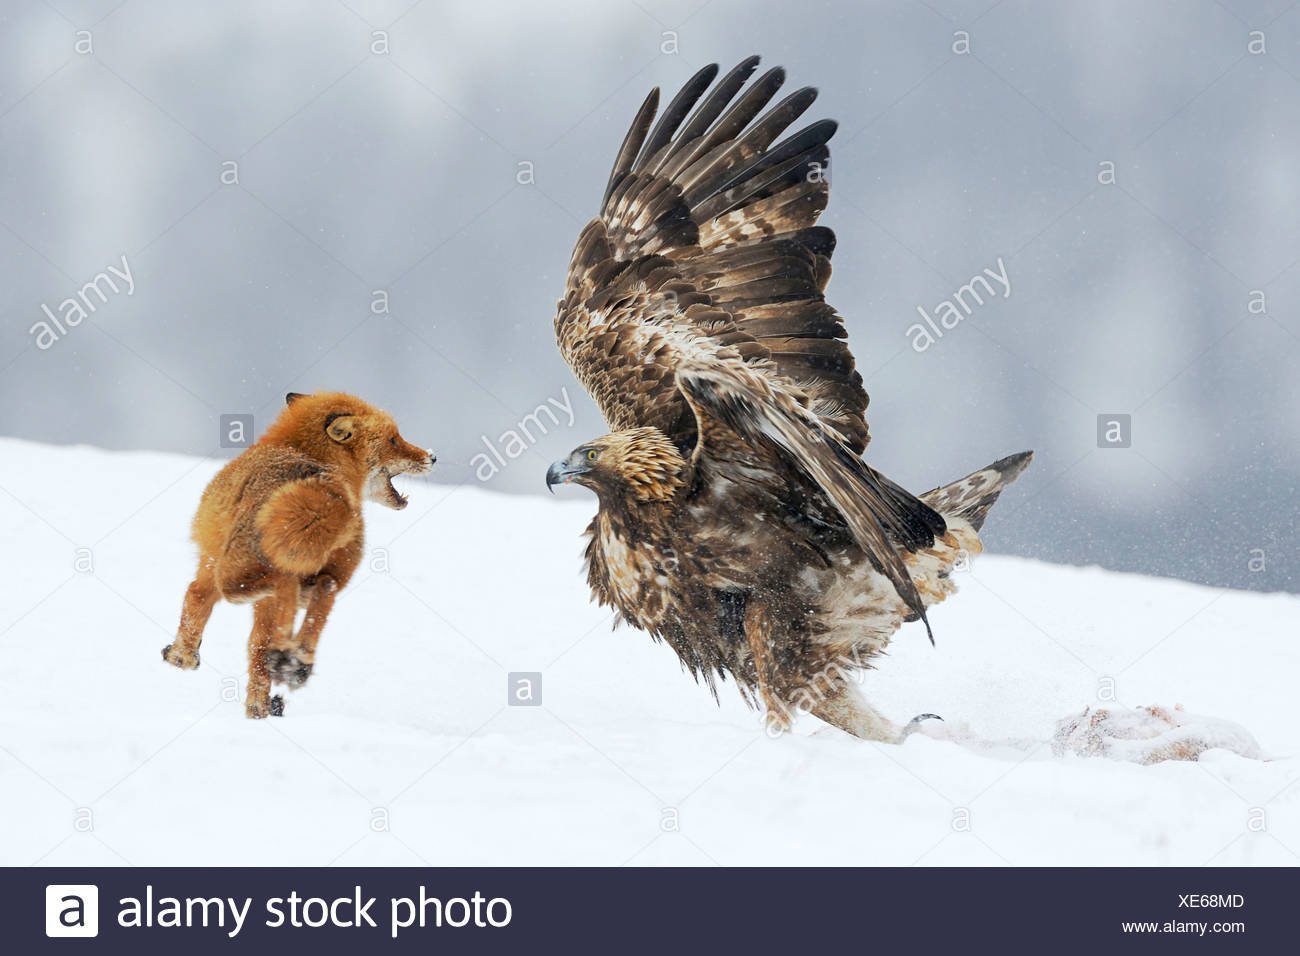 Golden Eagle (Aquila chrysaetos) fighting with a red fox (Vulpes vulpes) over a carcass, Sinite Kamani Nature Park, Bulgaria - Stock Image